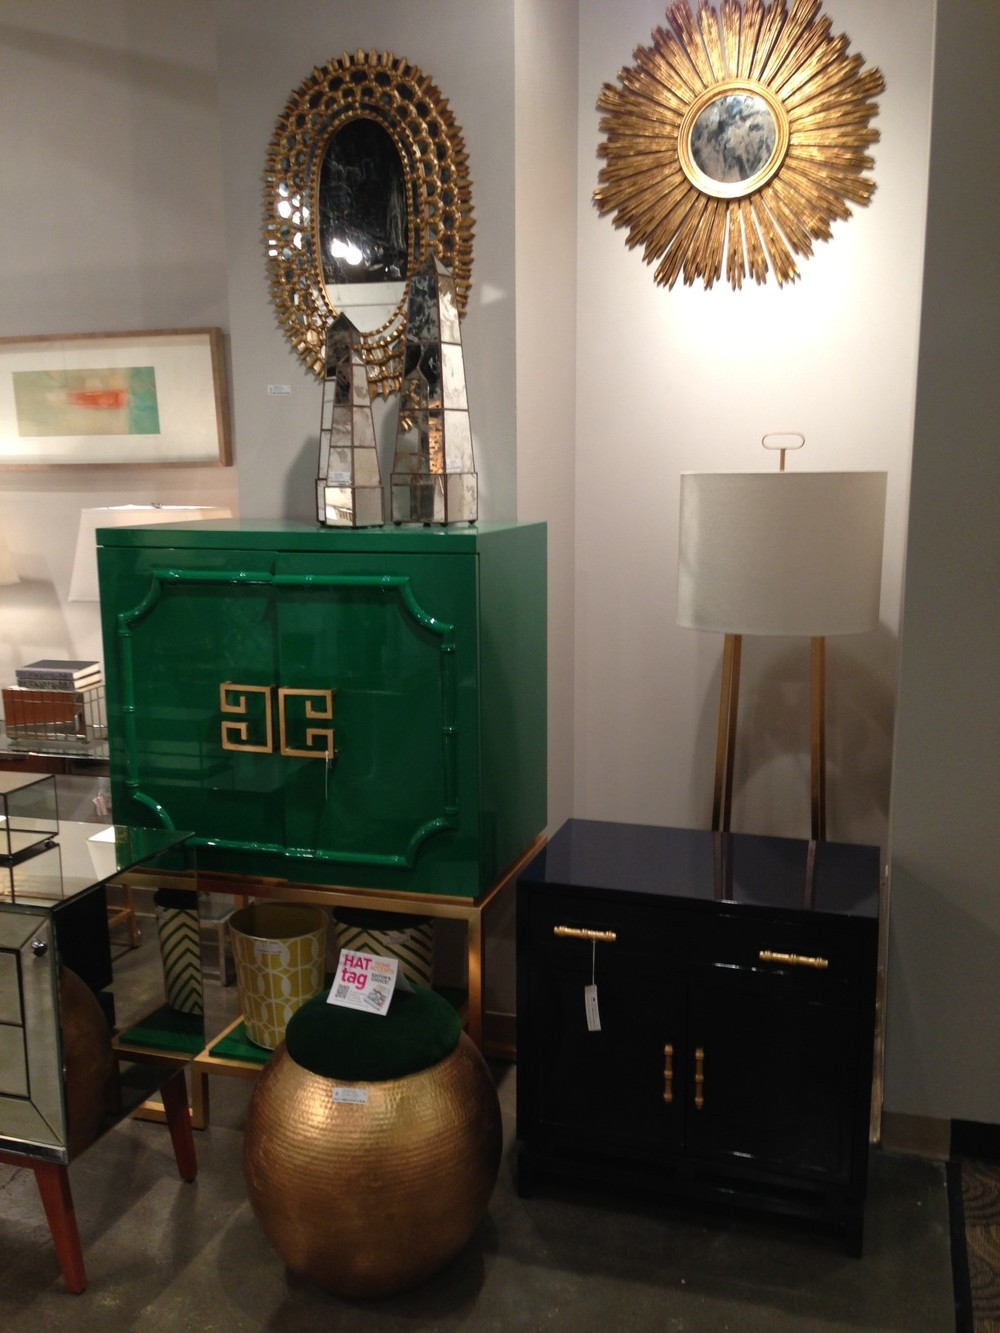 5 Trends Discovered at Las Vegas Market39s Home Furnishings amp Decor